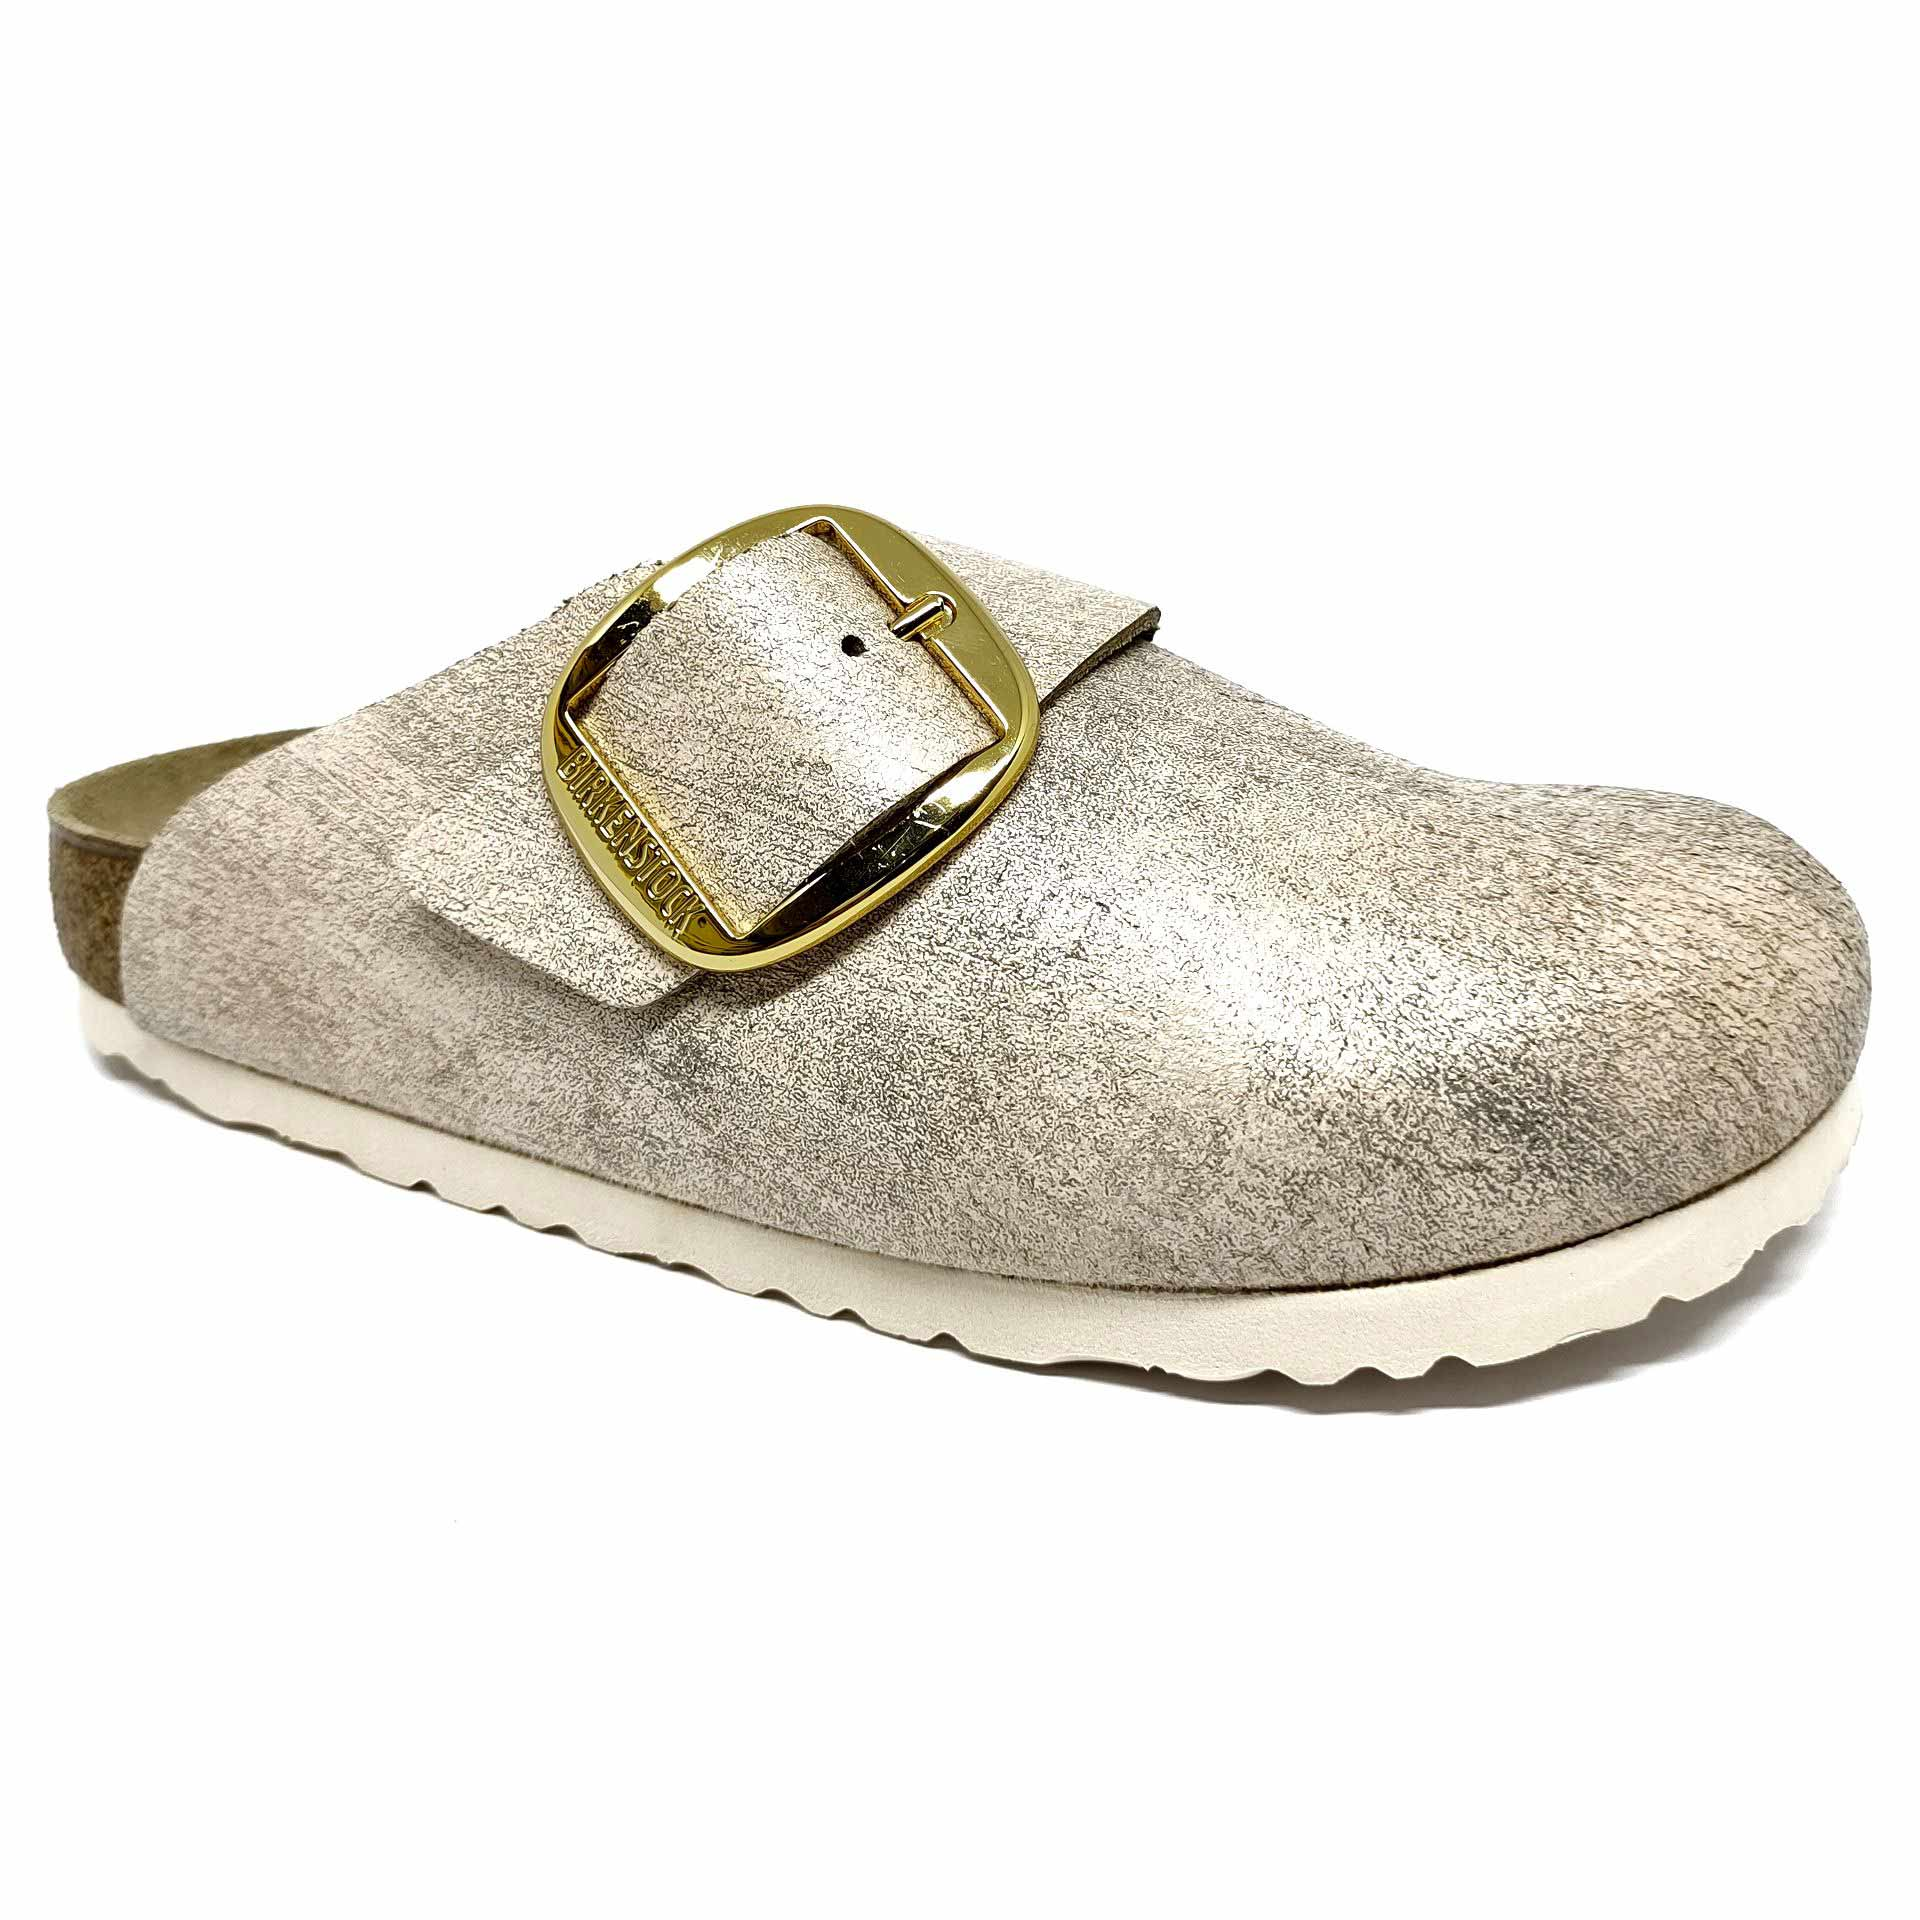 Birkenstock Basel BB VL Washed Metallic Rose Gold Narrow